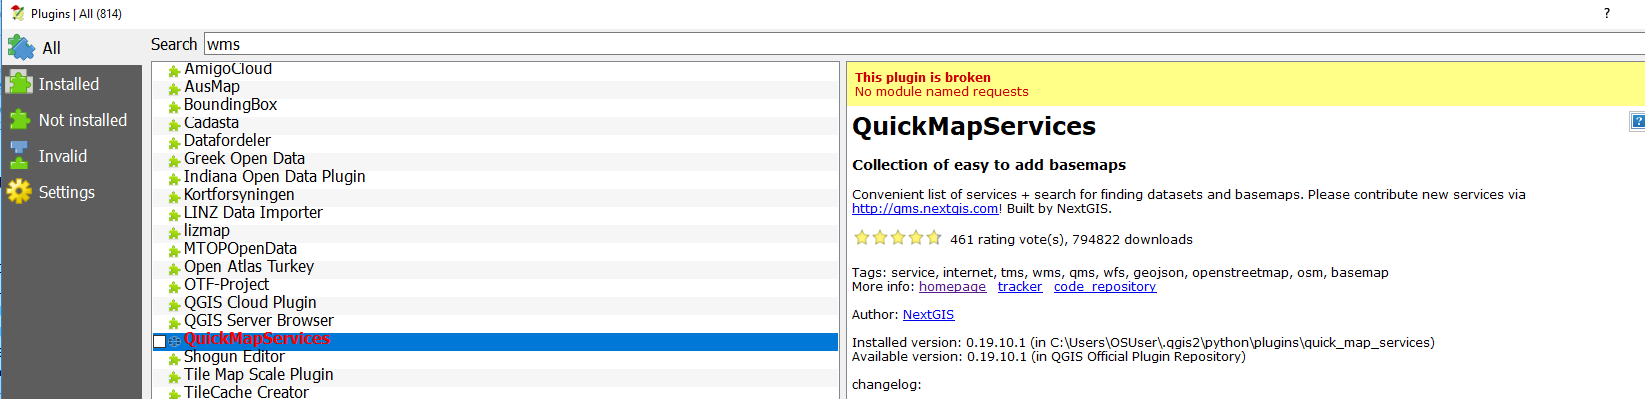 failed to add quickmapservices plugin on qgis 2 14 9 - the